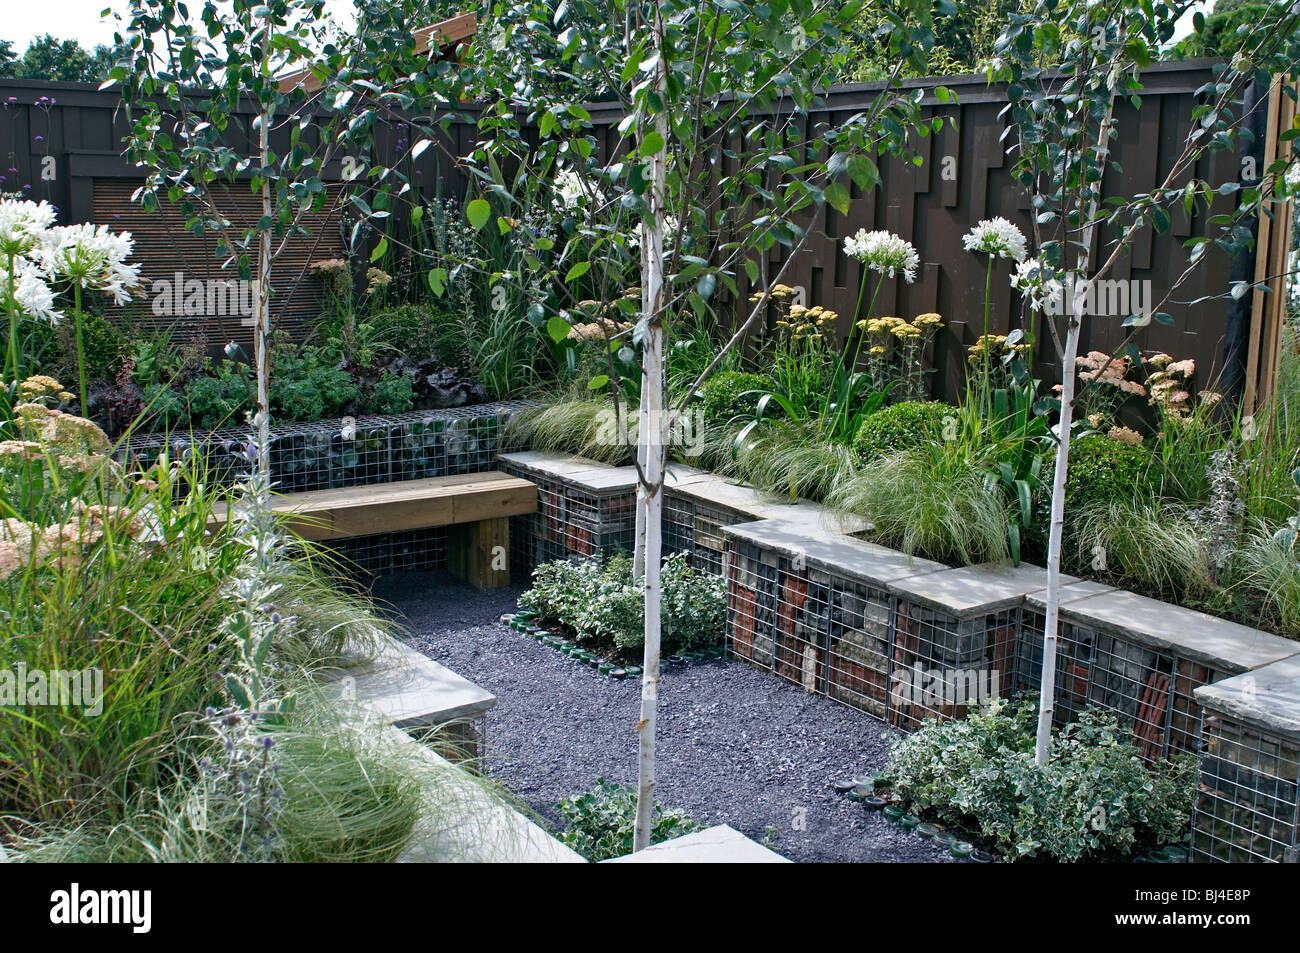 Beautiful A Small Urban Courtyard Garden With Seating